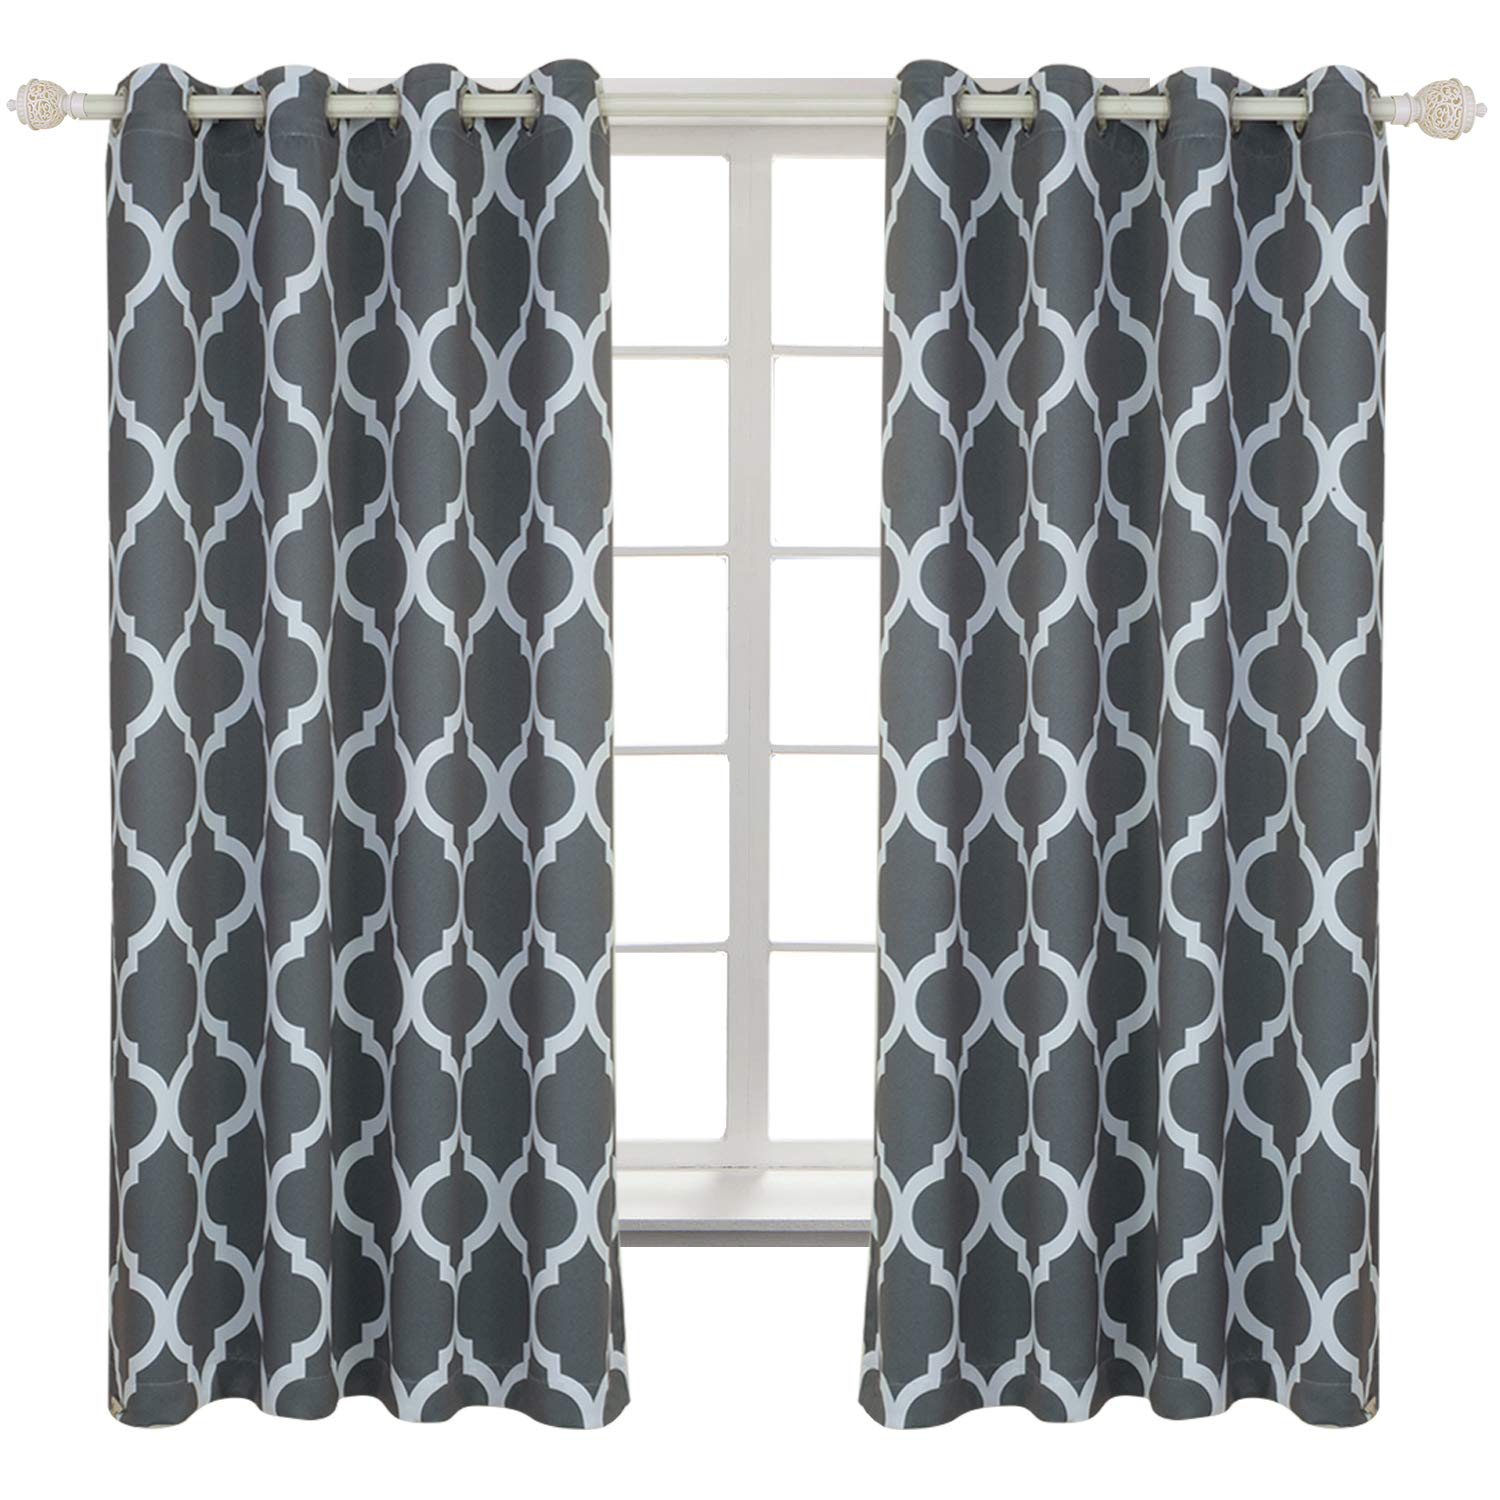 BGment Kids Blackout Curtains 42 x 63 Inch, Greyish White Set of 2 Curtain Panels Grommet Thermal Insulated Room Darkening Printed Car Bus Patterns Nursery and Kids Bedroom Curtains